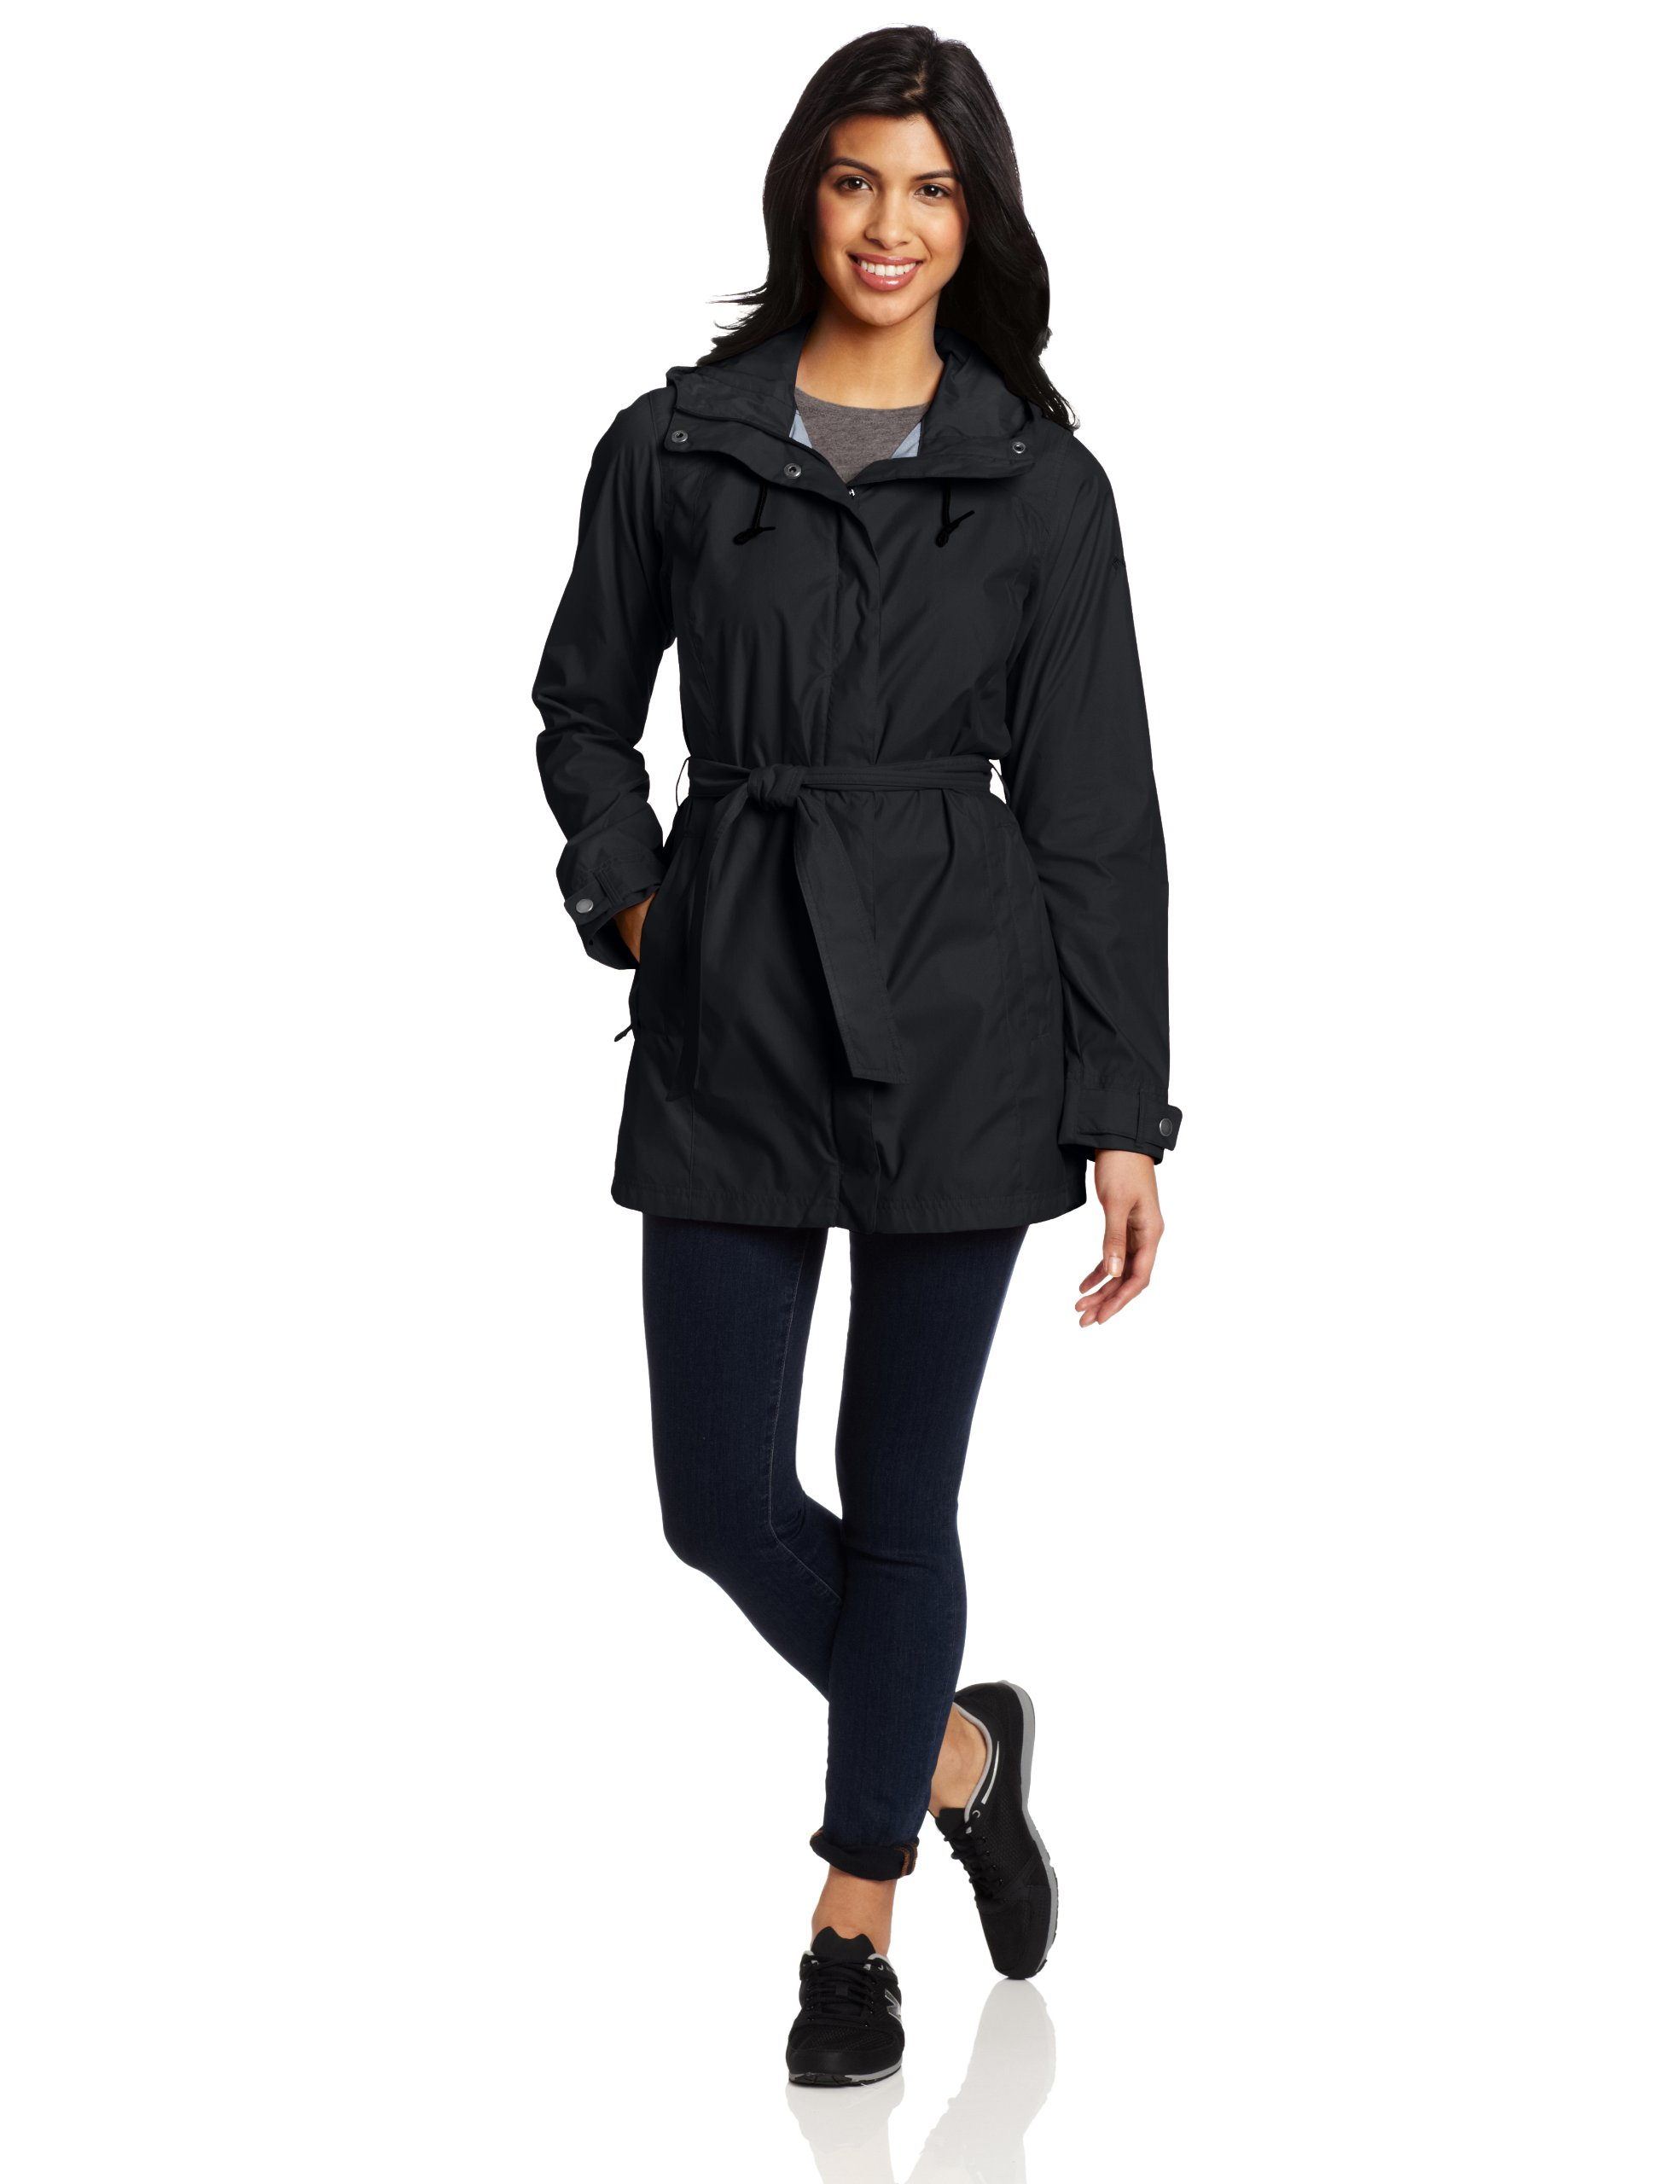 Columbia Women's Pardon My Trench Rain Jacket, Black, Medium by Columbia